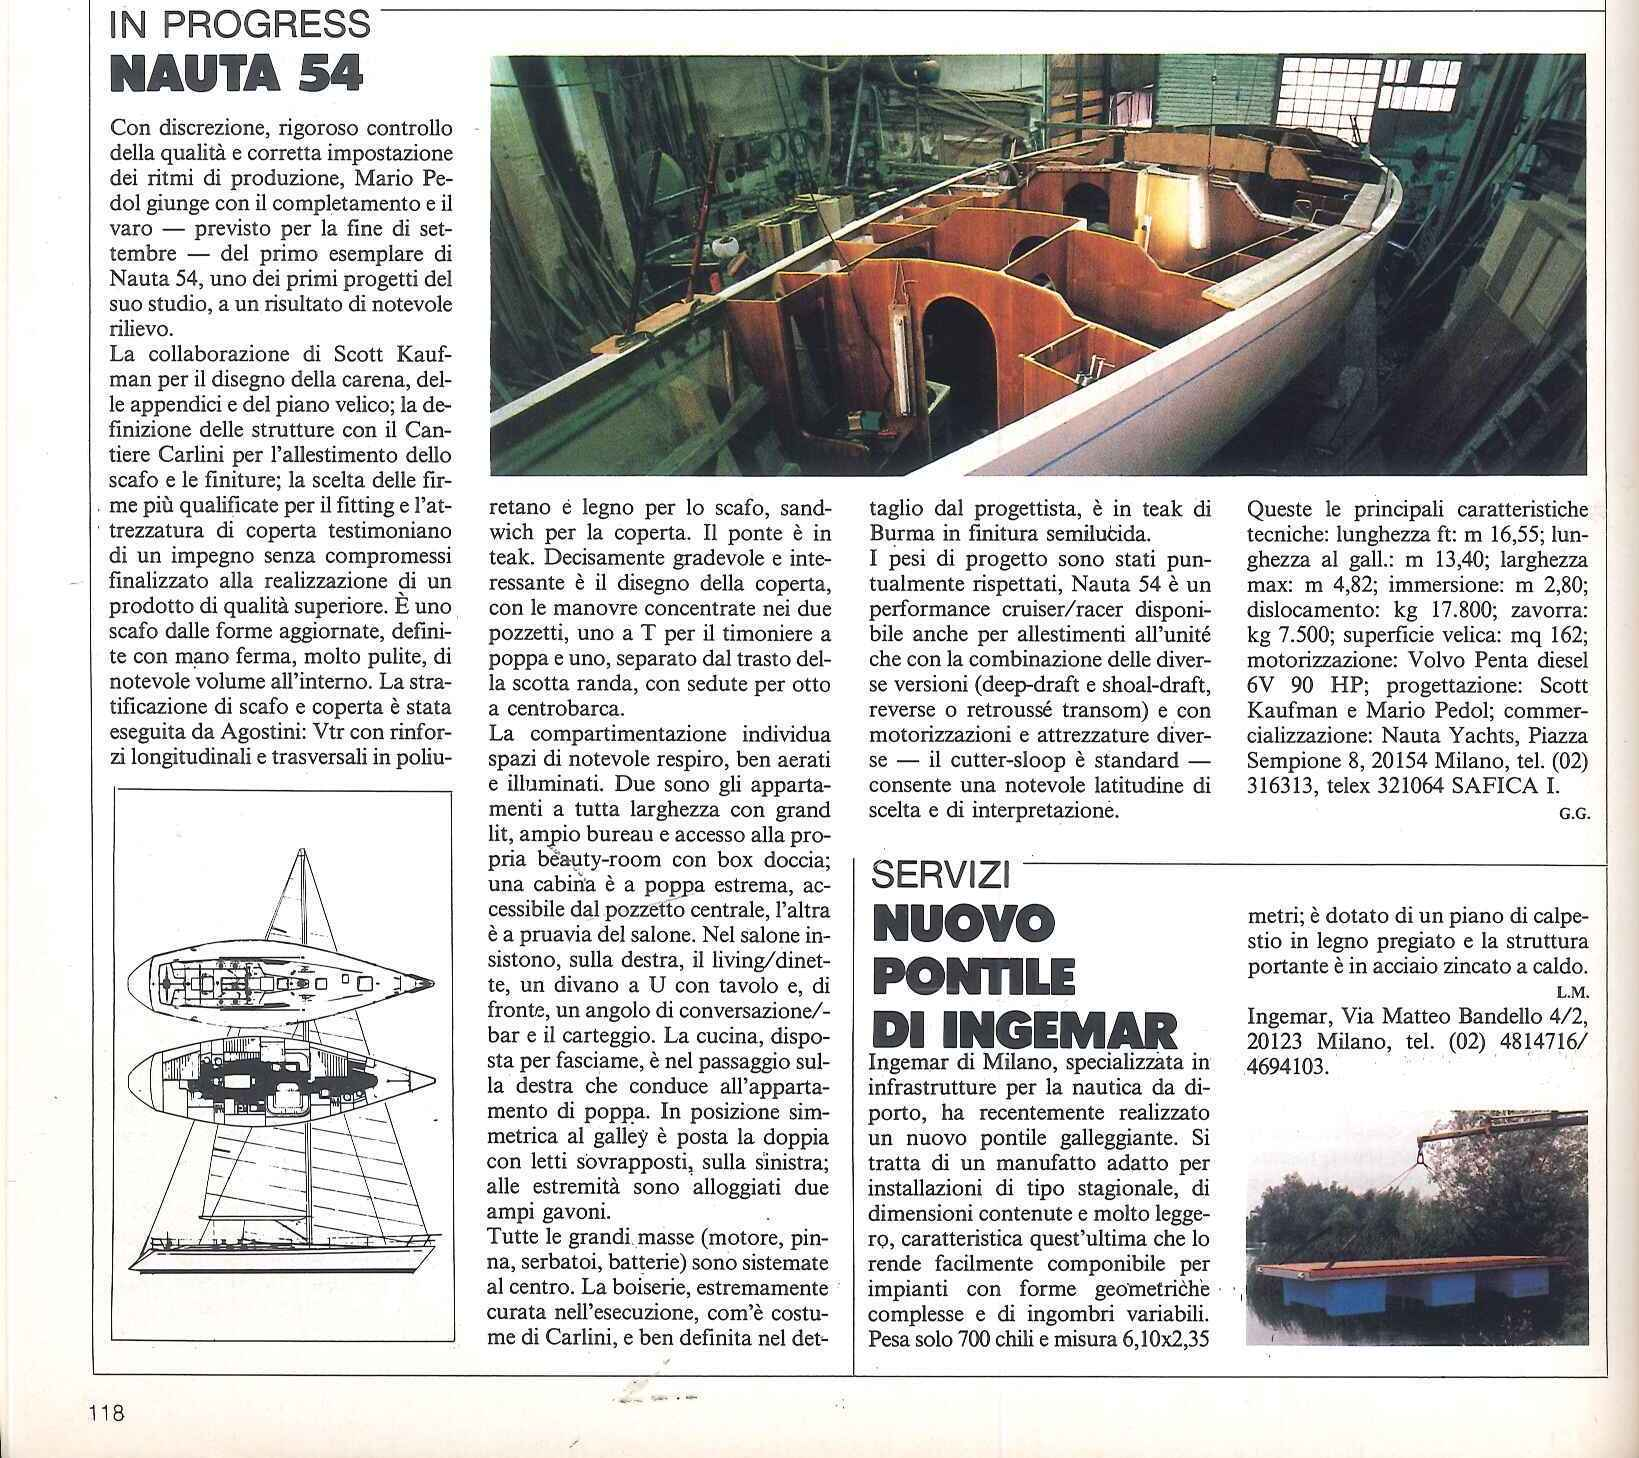 1986 09 PRESS NAUTA 54 Uomo Mare n° 101 (31).jpg